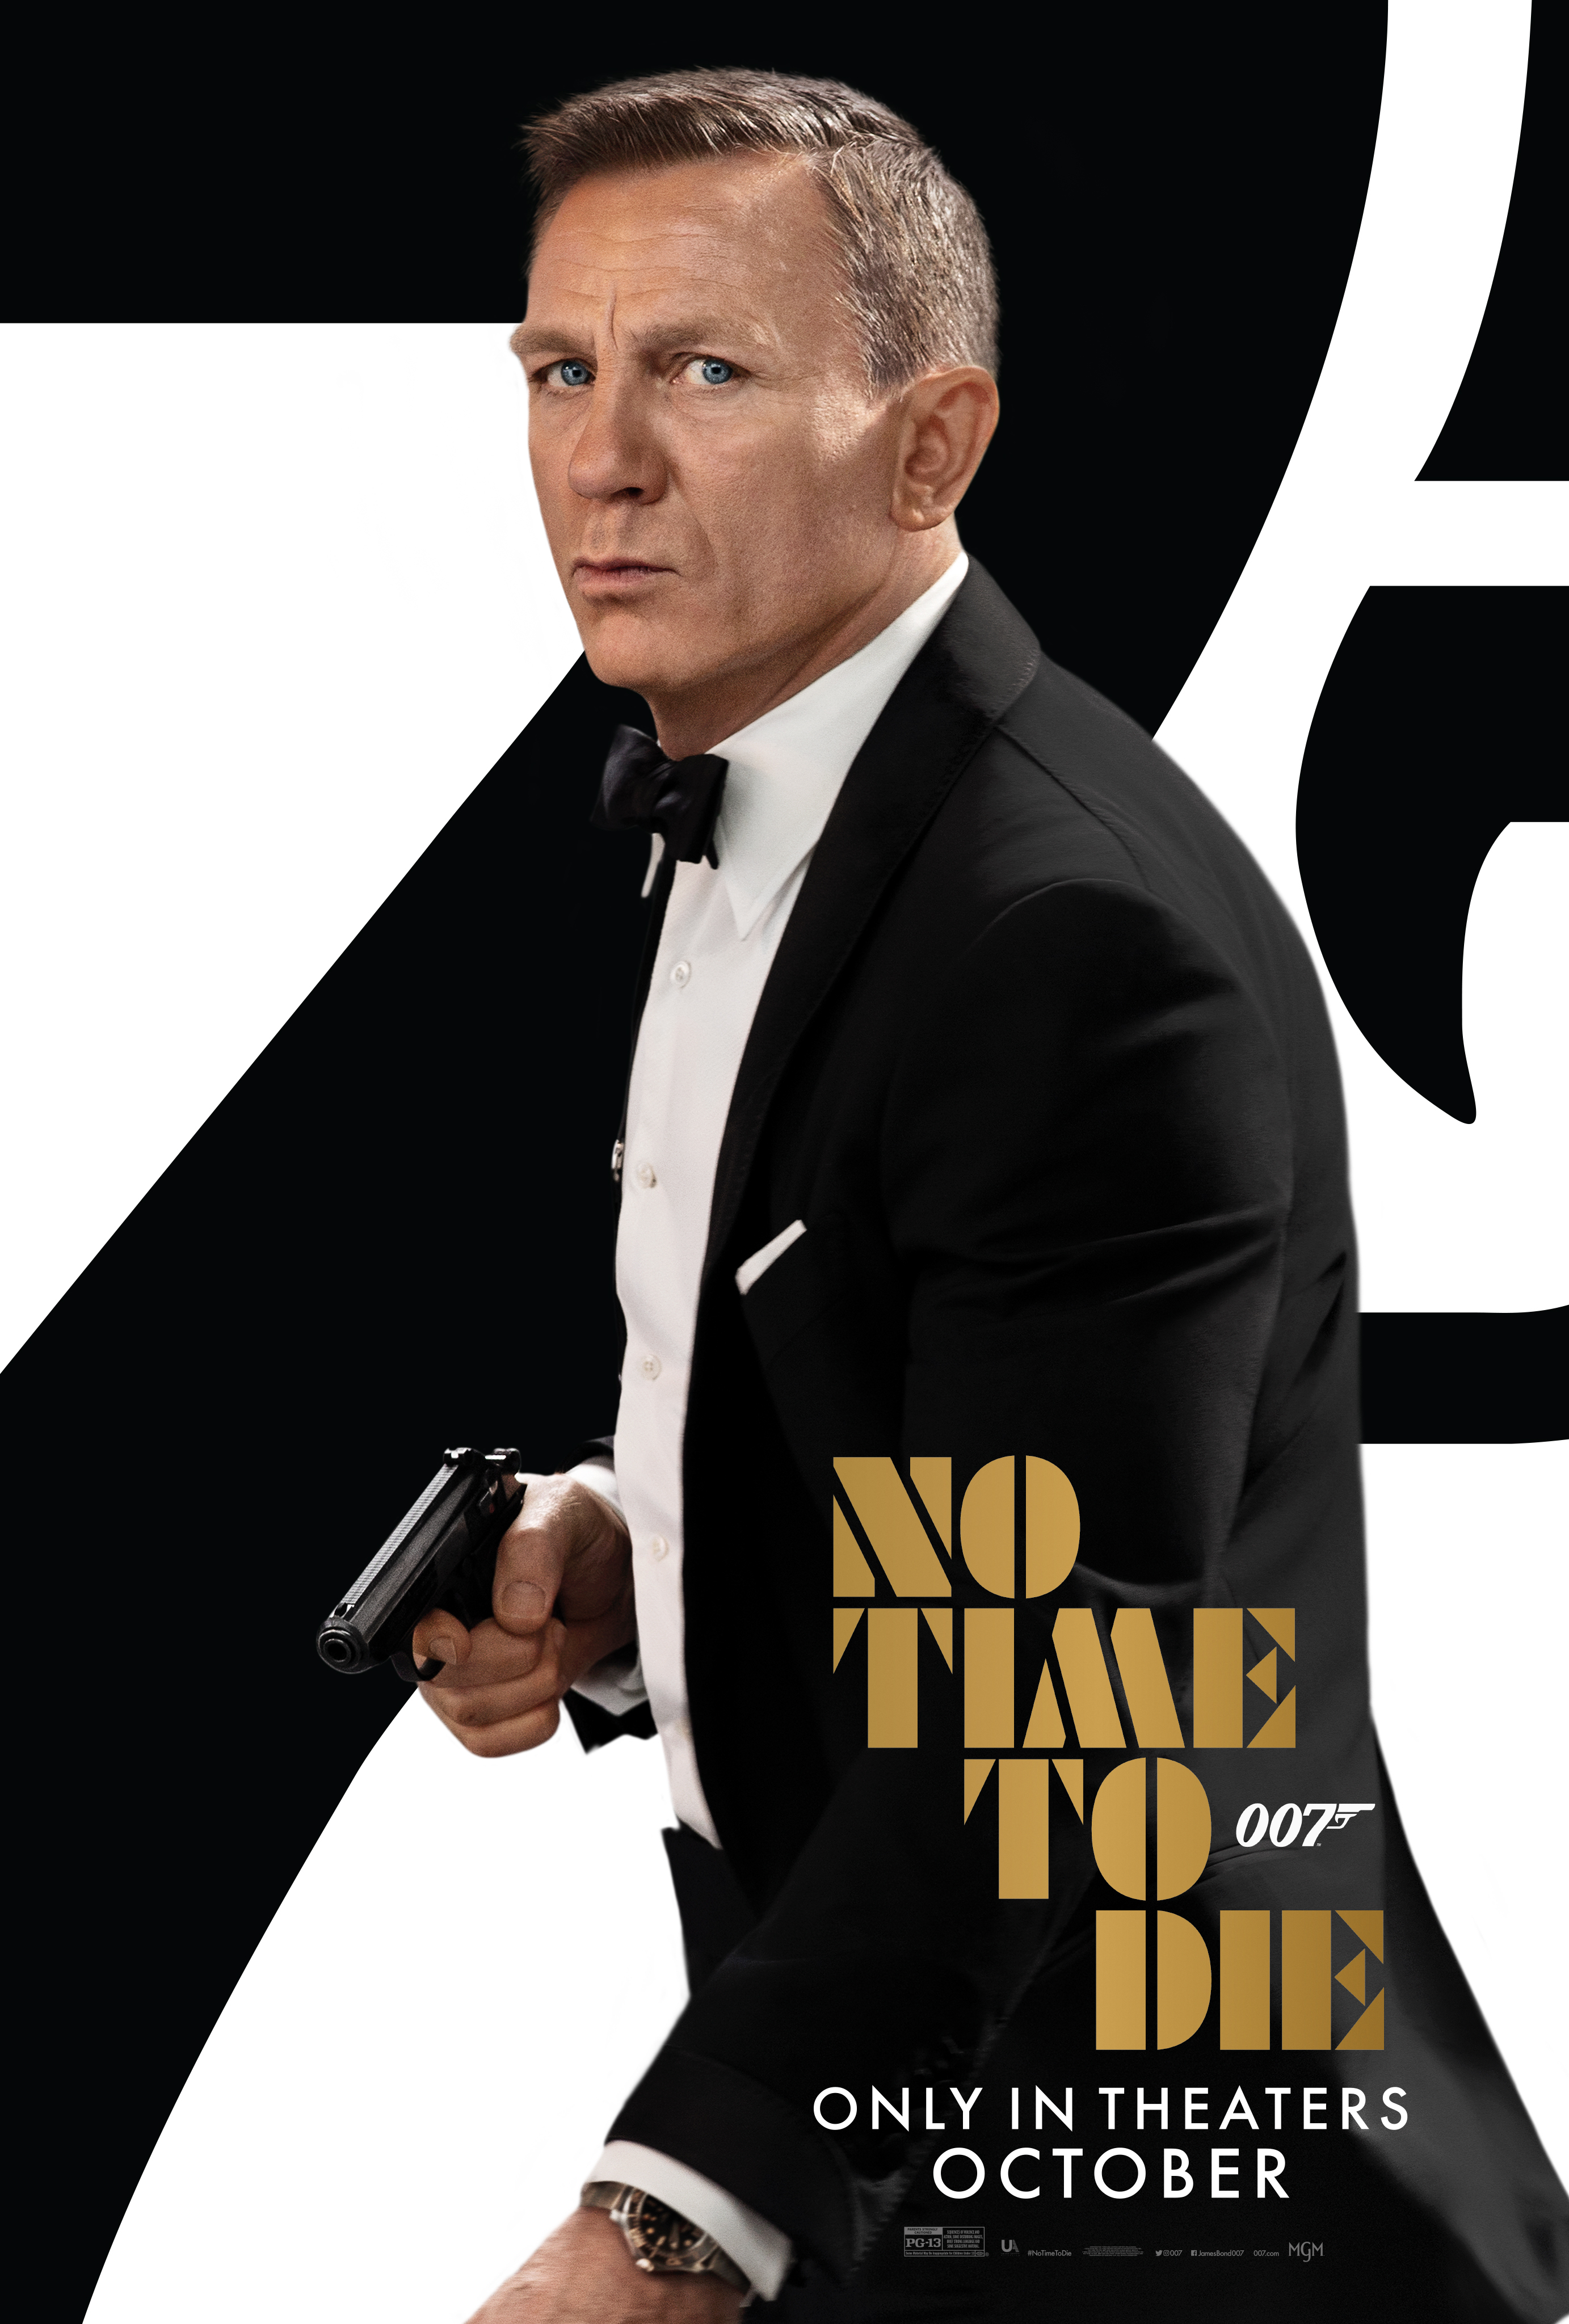 Movie poster image for NO TIME TO DIE